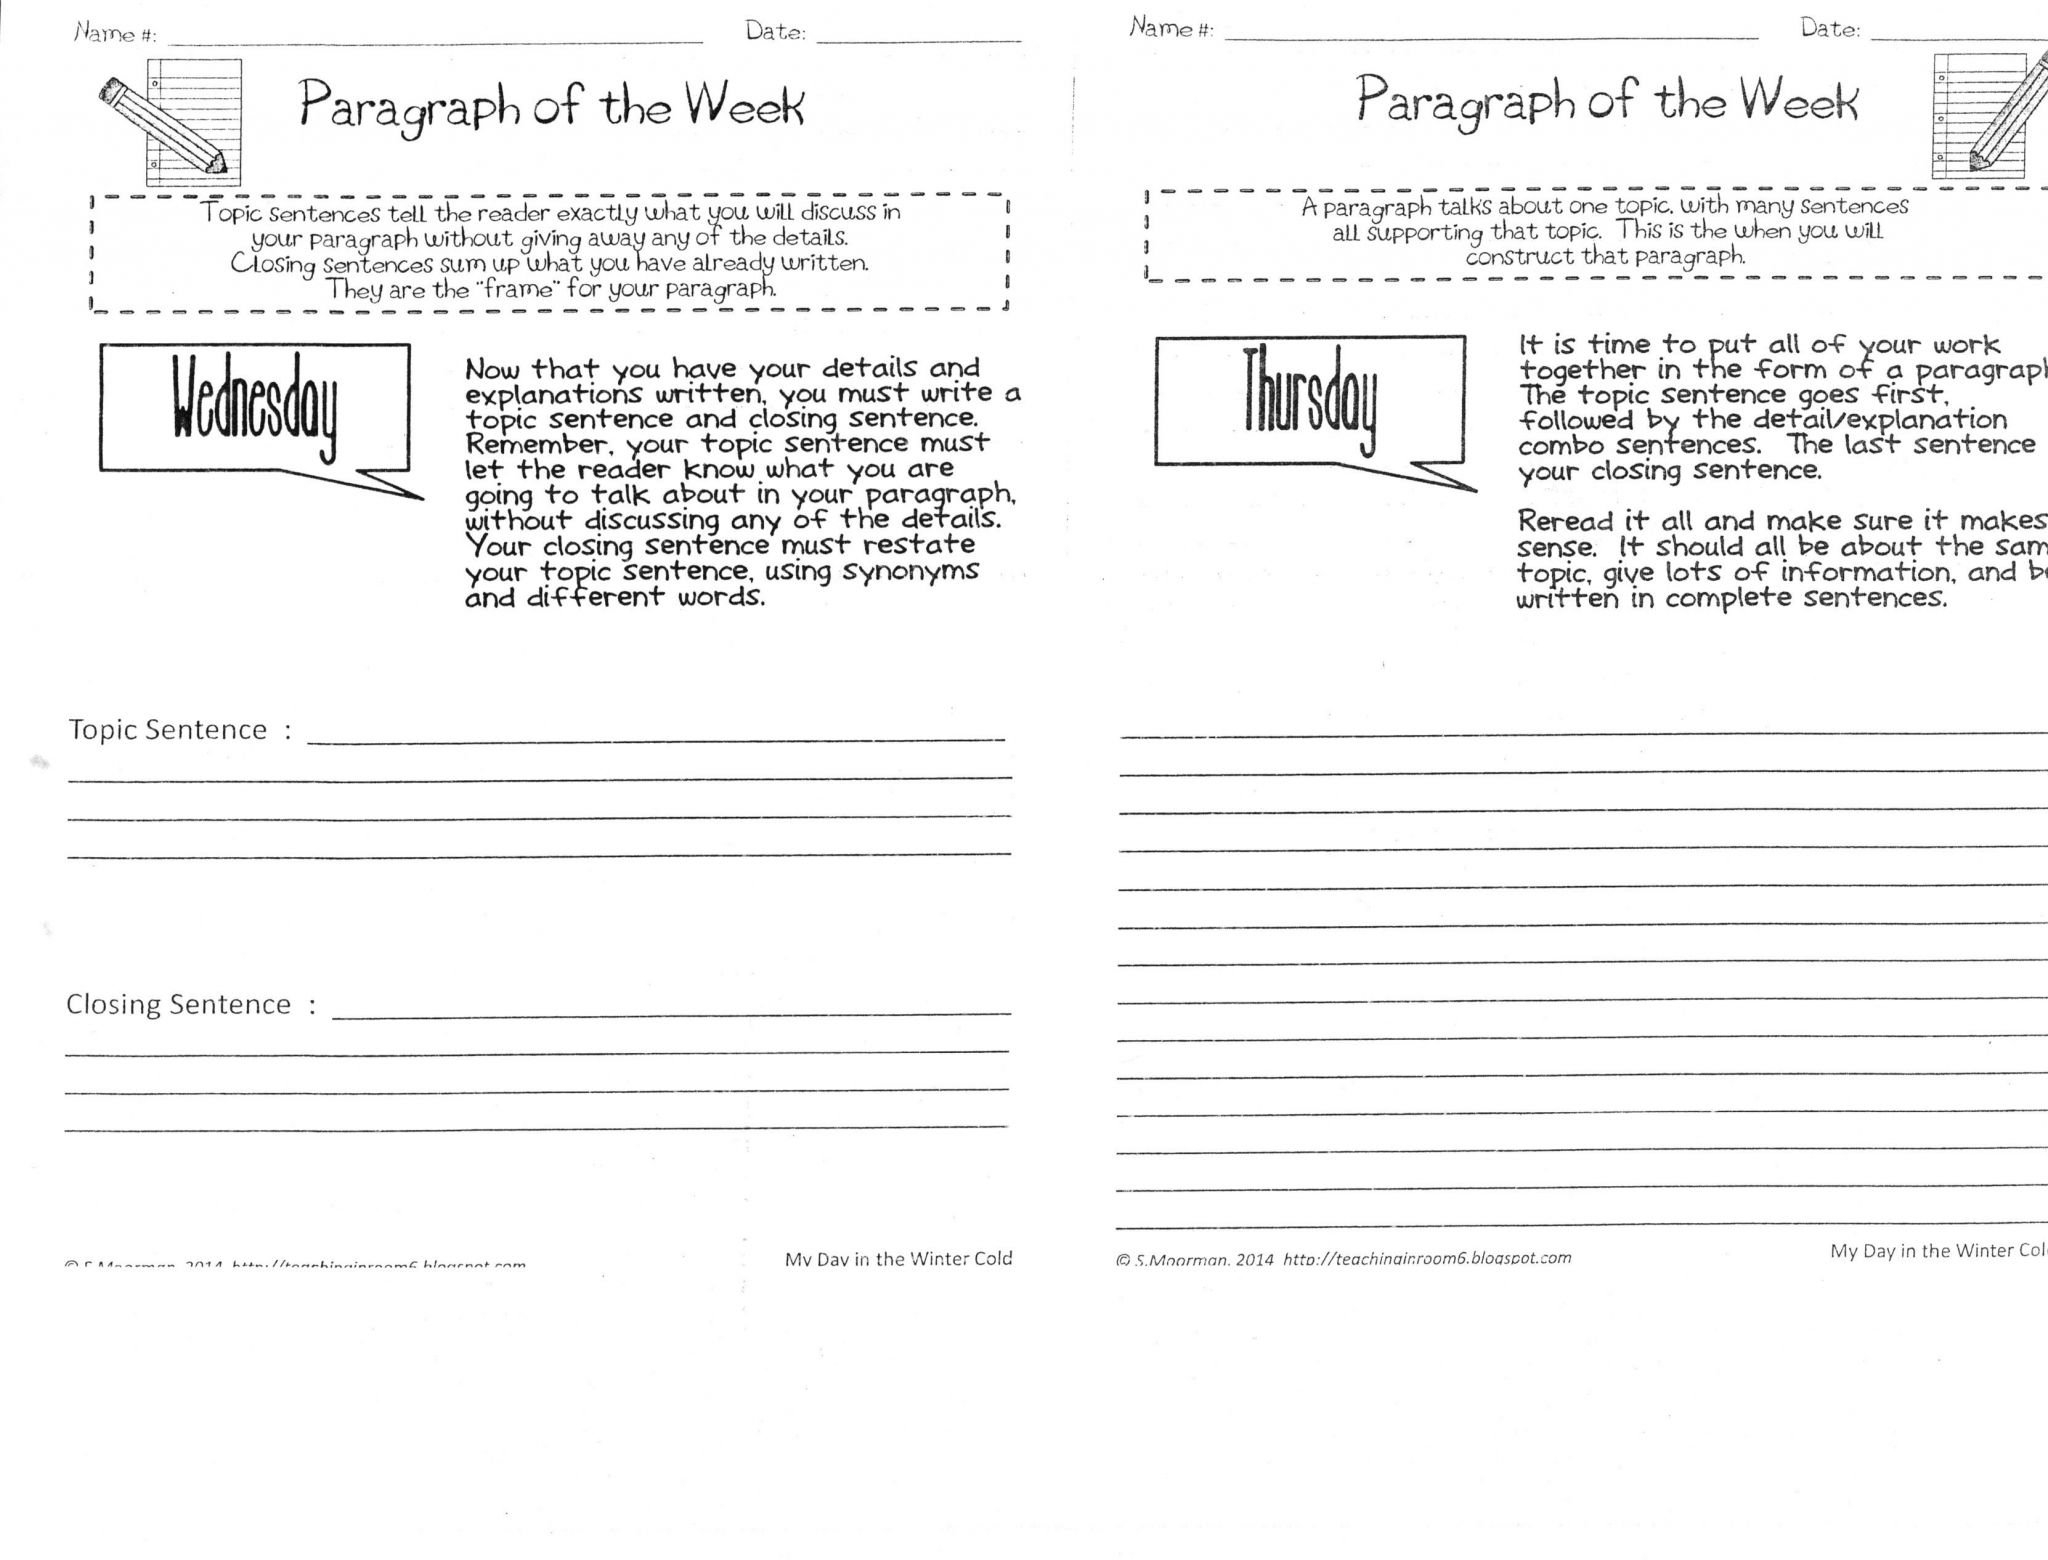 Chapter 6 Ancient Rome And Early Christianity Worksheet Answers For Chapter 6 Ancient Rome And Early Christianity Worksheet Answers